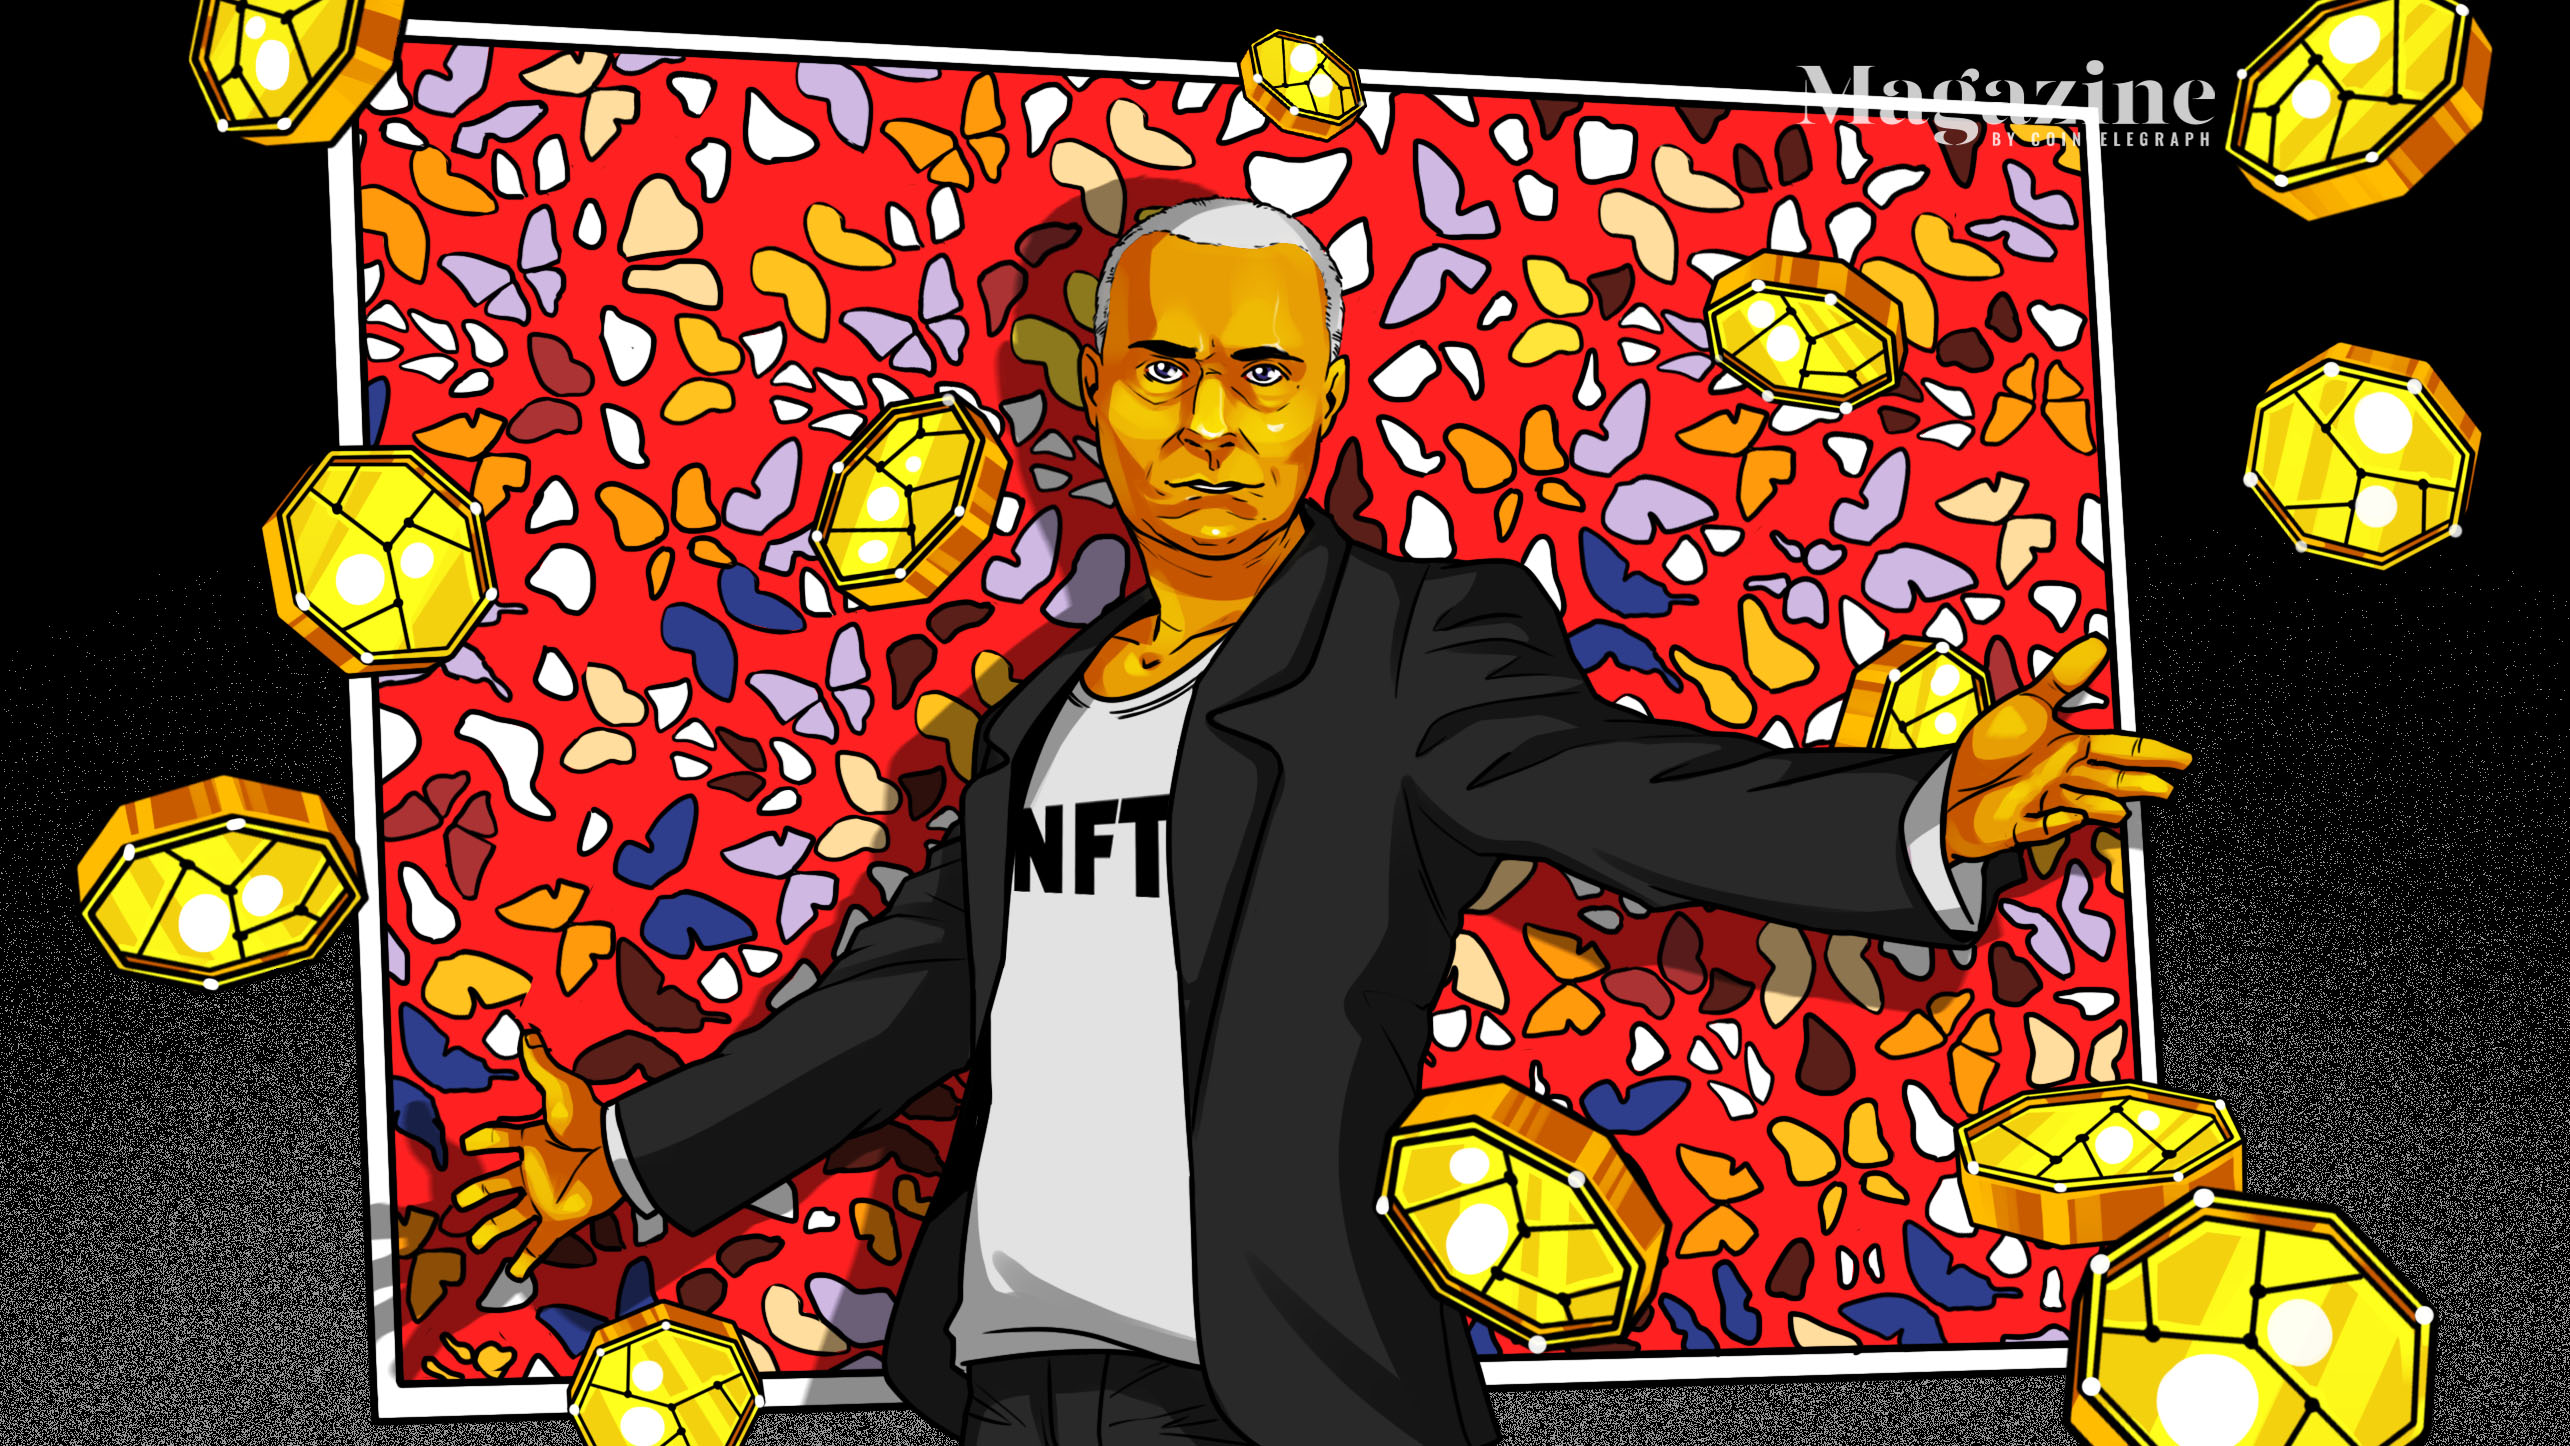 'Can you believe in me? Can you believe in this?' Damien Hirst blurs the boundary between art and money with groundbreaking NFT experiment – Cointelegraph Magazine